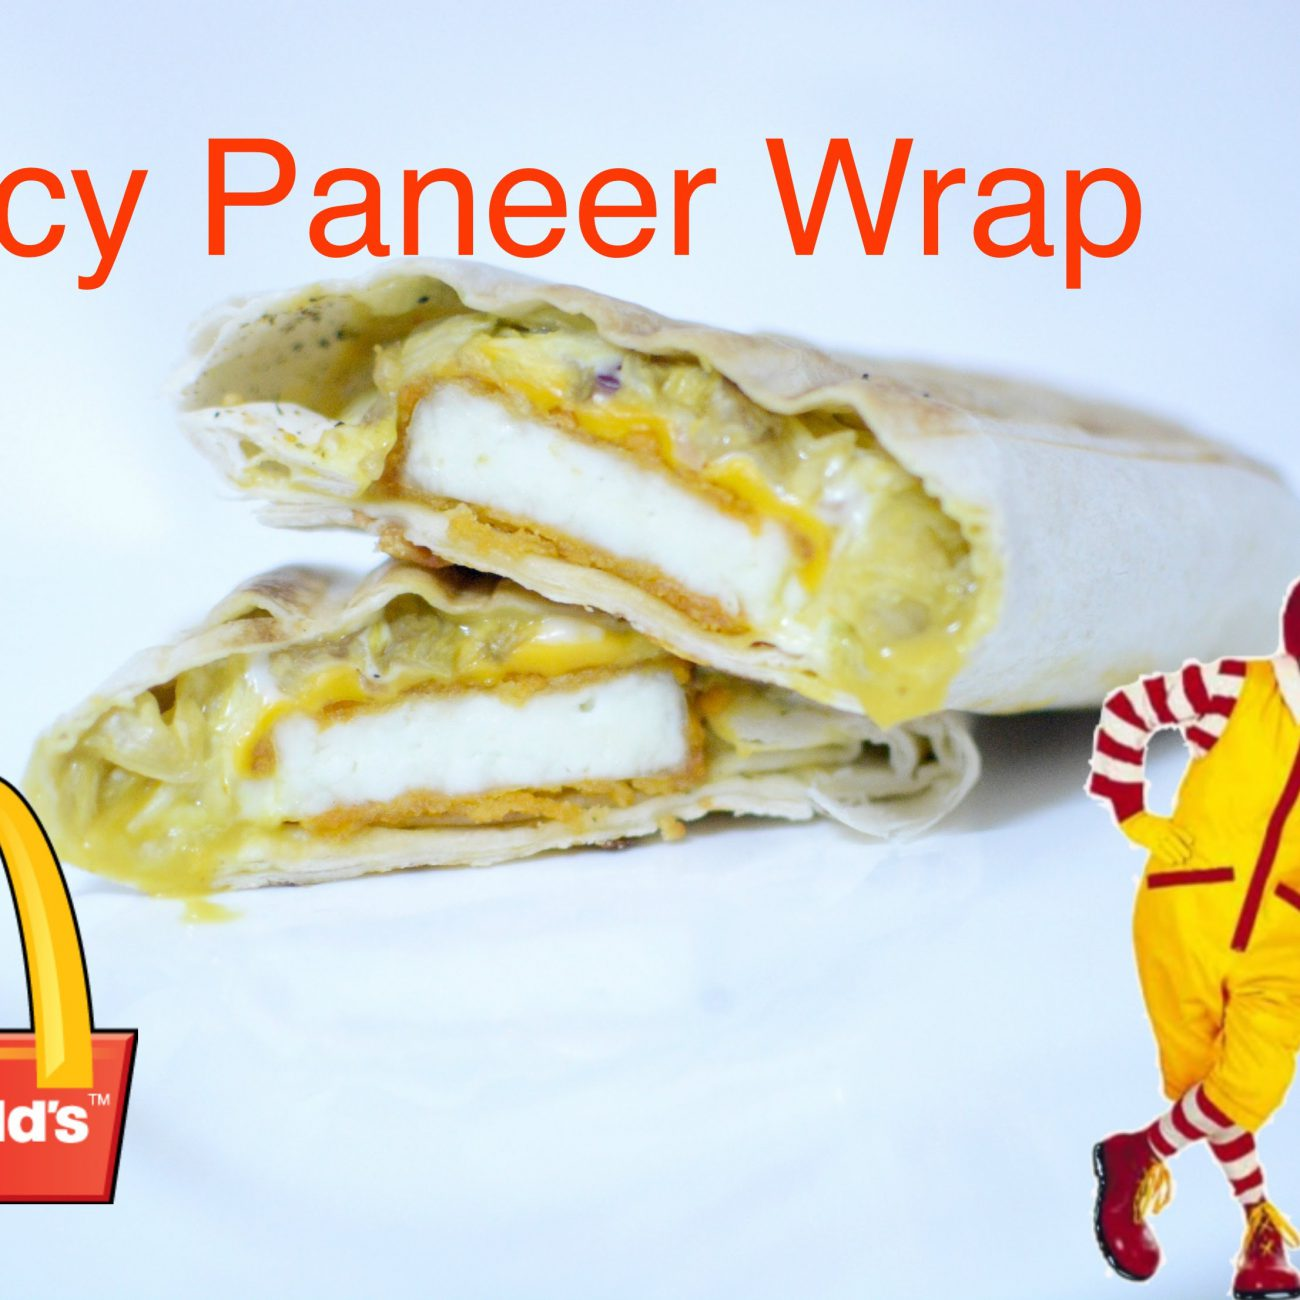 McDonald's Spicy Paneer Wrap Recipe   #WhyNot Series   Episode #1